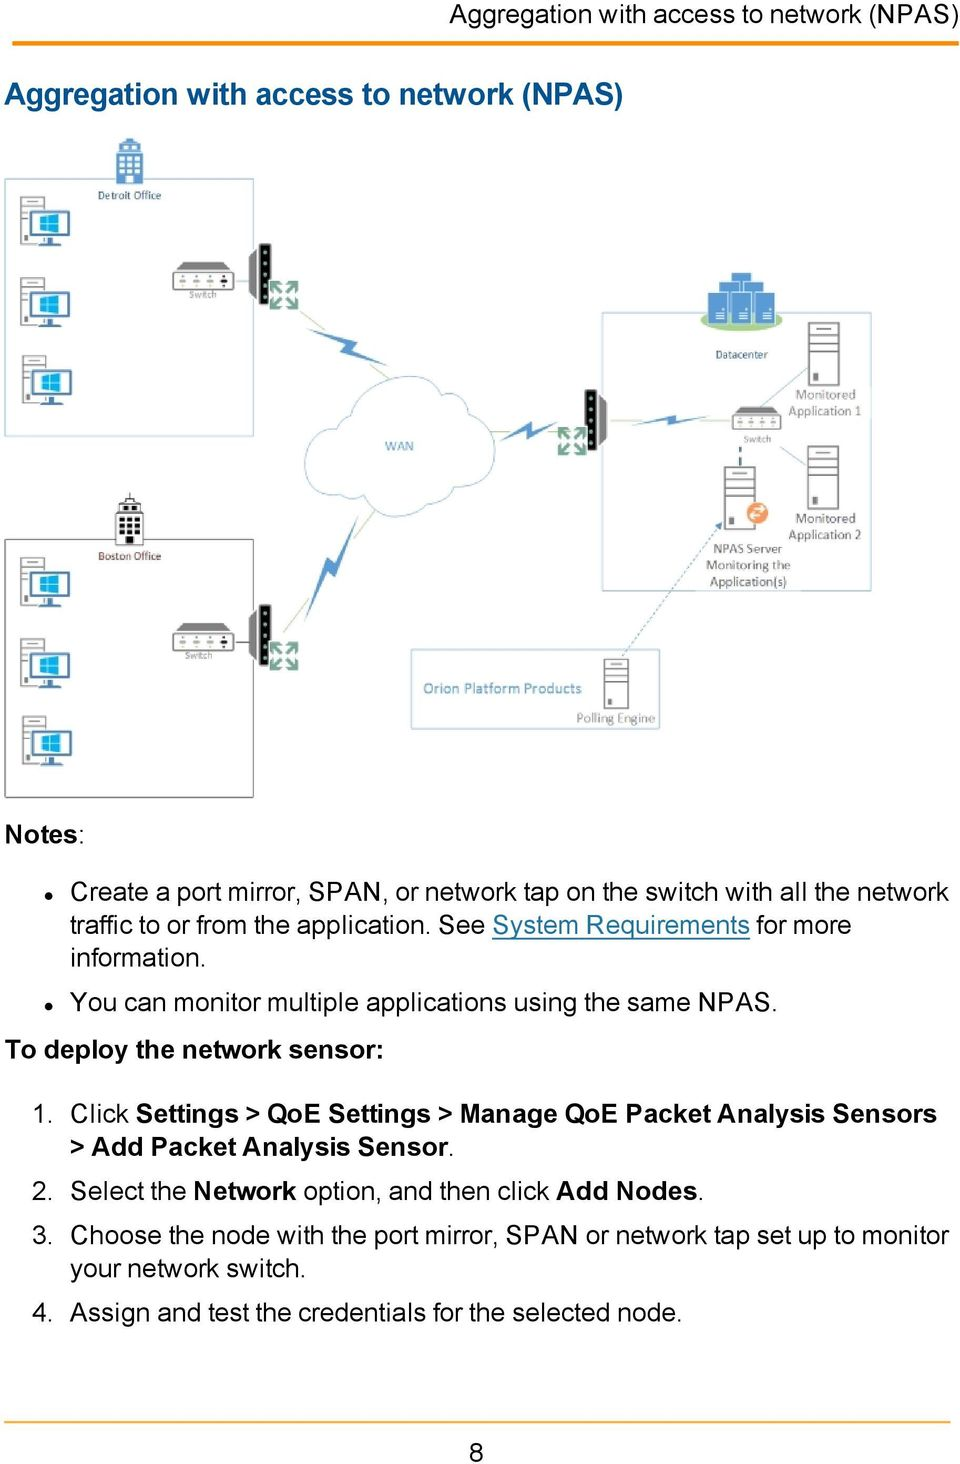 To deploy the network sensor: 1. Click Settings > QoE Settings > Manage QoE Packet Analysis Sensors > Add Packet Analysis Sensor. 2.